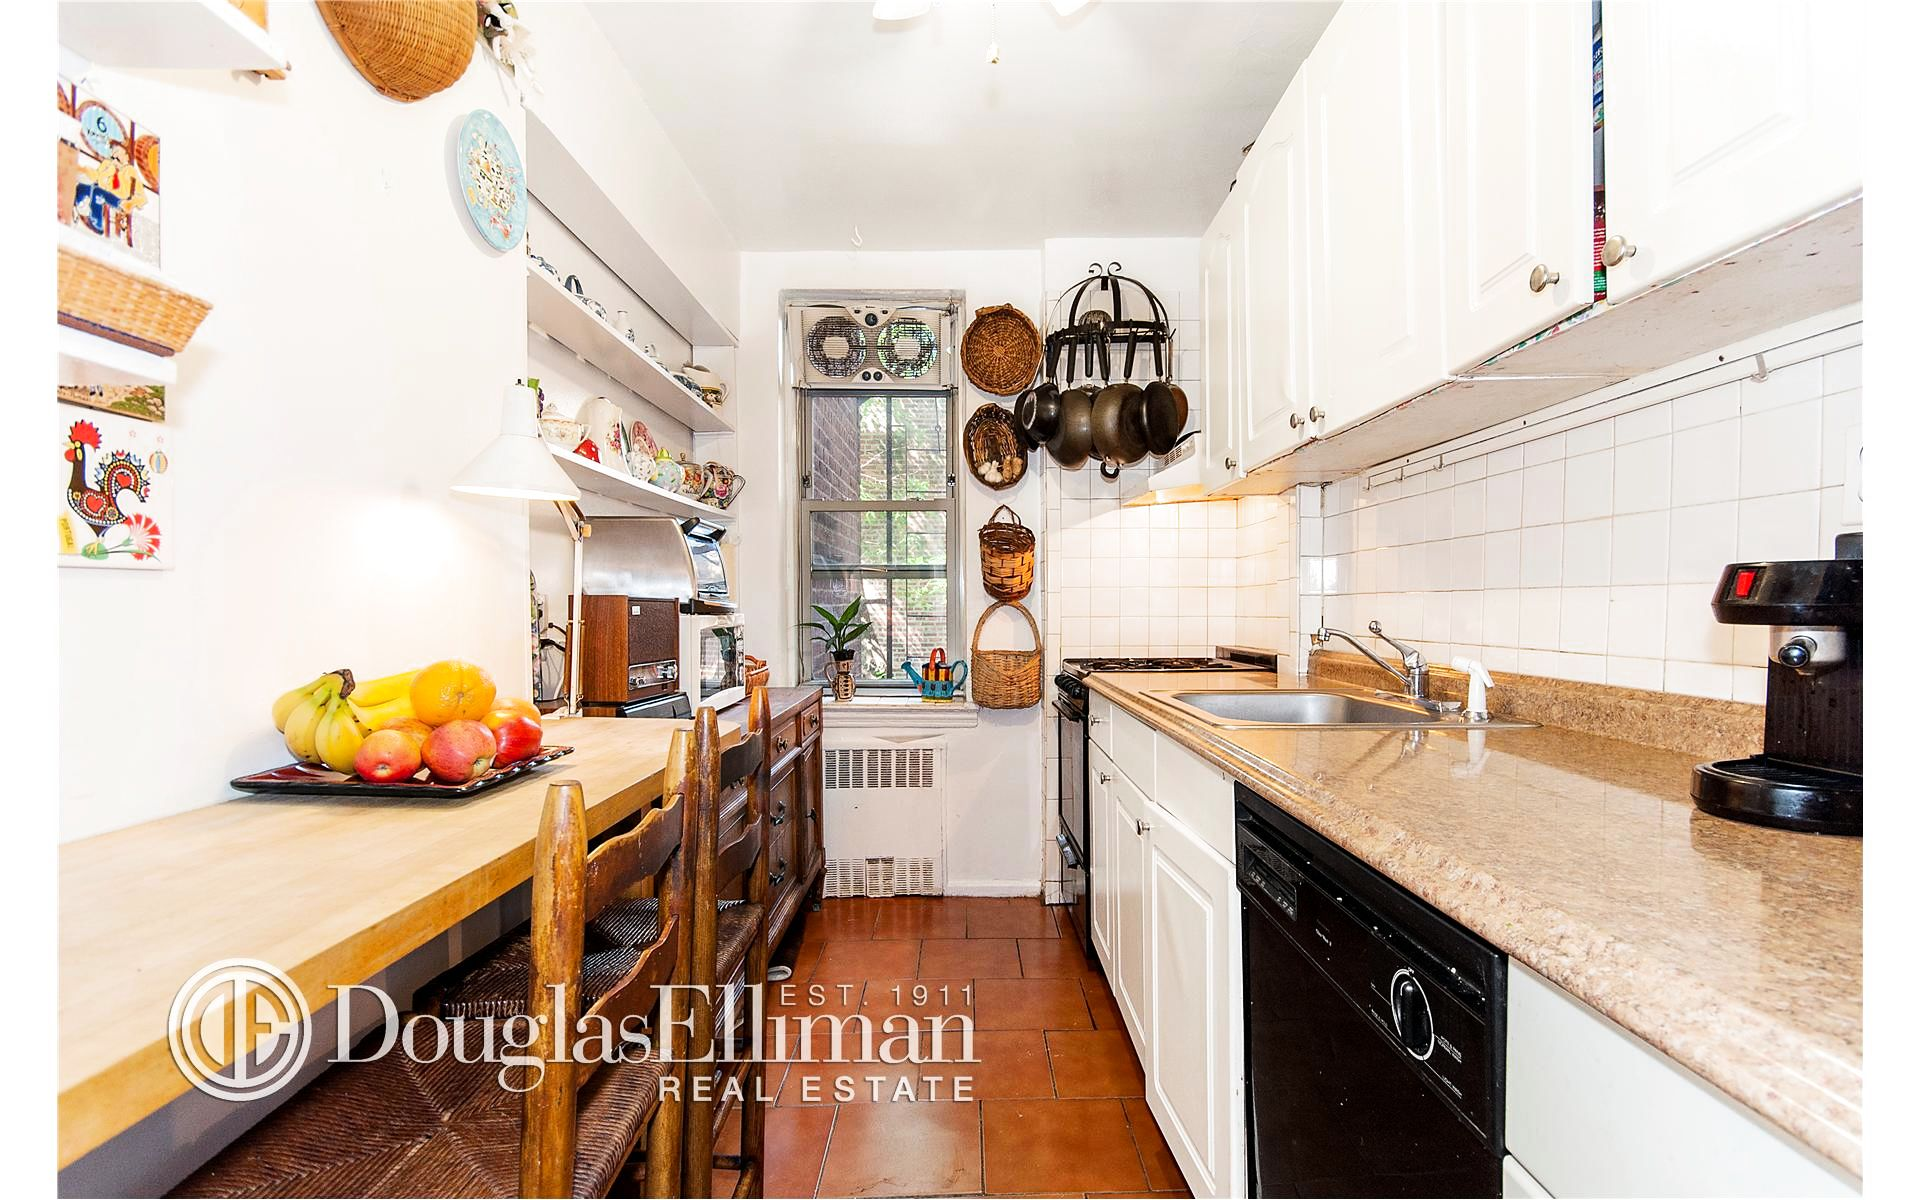 Sunny Hill Gardens, 39-25 51st Street, 1F Photo 1 - ELLIMAN-2148091